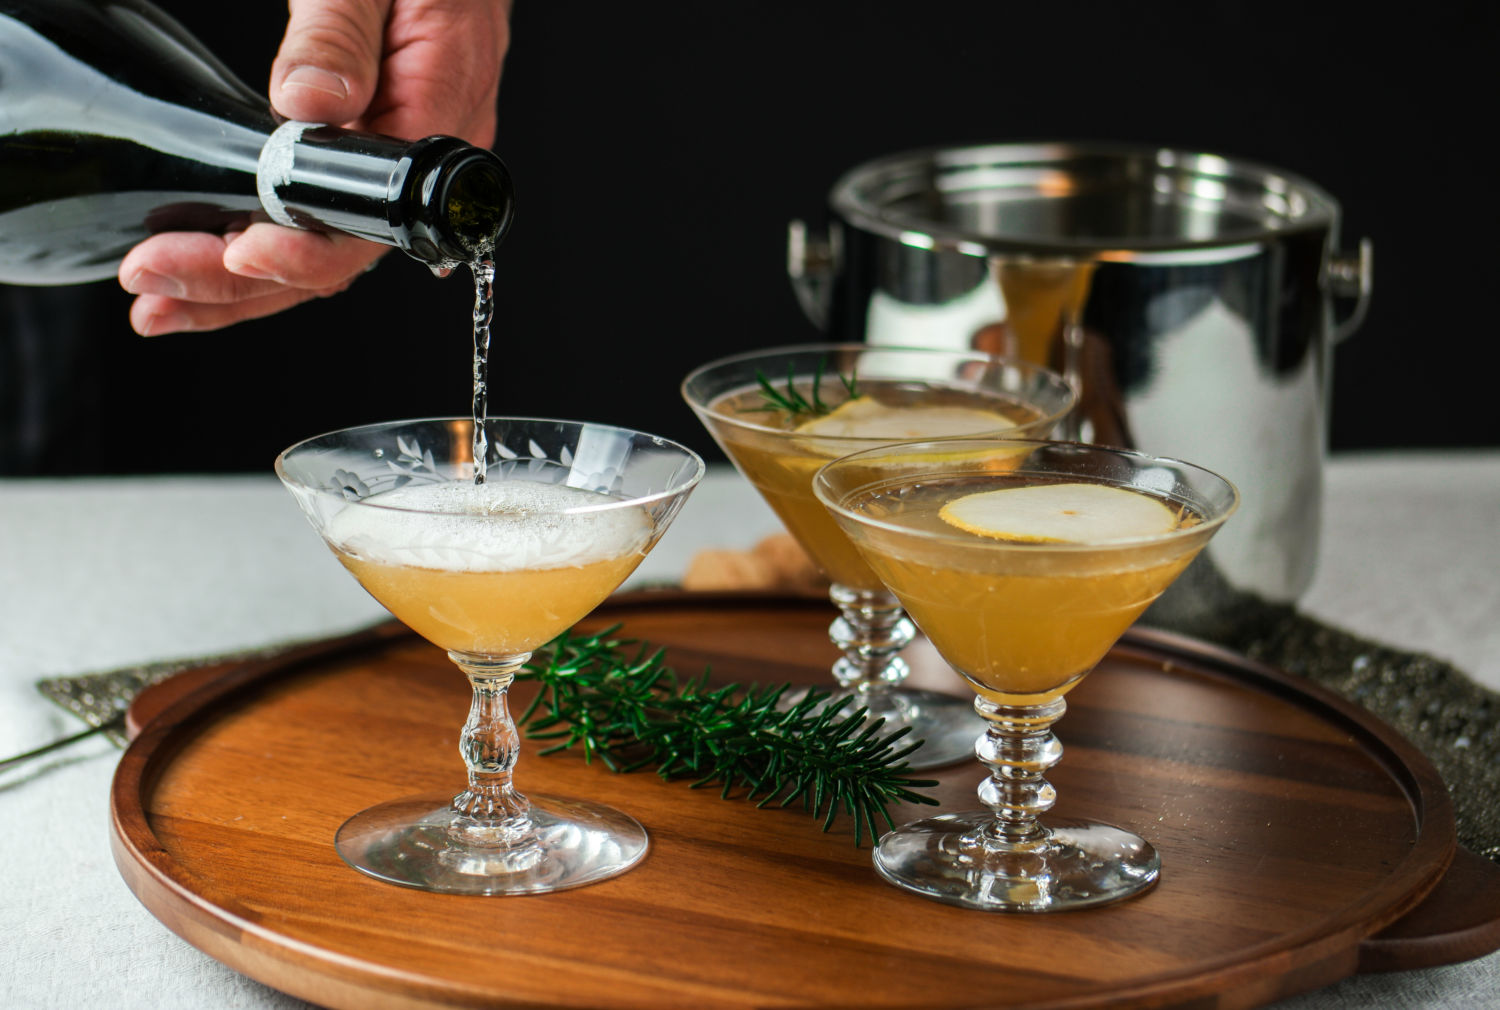 Sparkling Pear Rosemary Cocktail